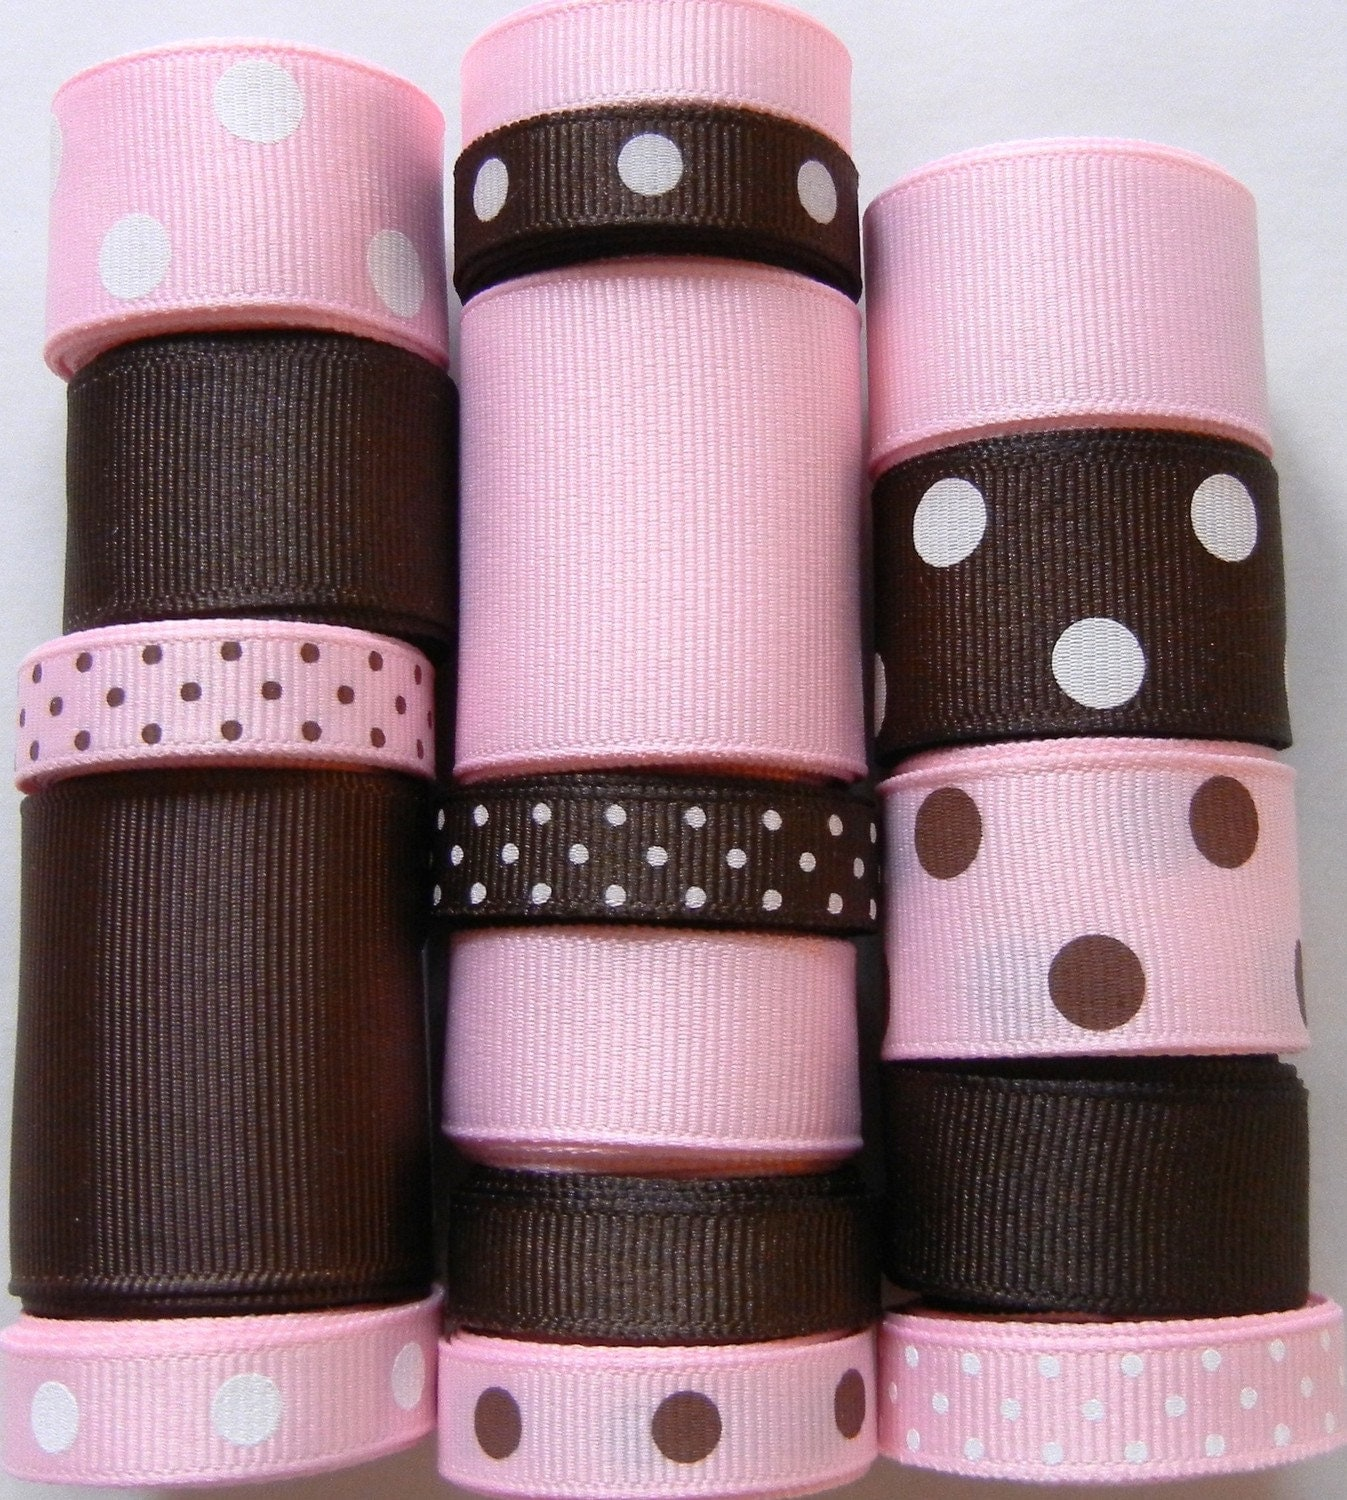 Light Pink/Brown Ribbon Wholesale Lot 17 Yards Grosgrain Solid and Polka Dot Ribbon - You Receive 1 yard each